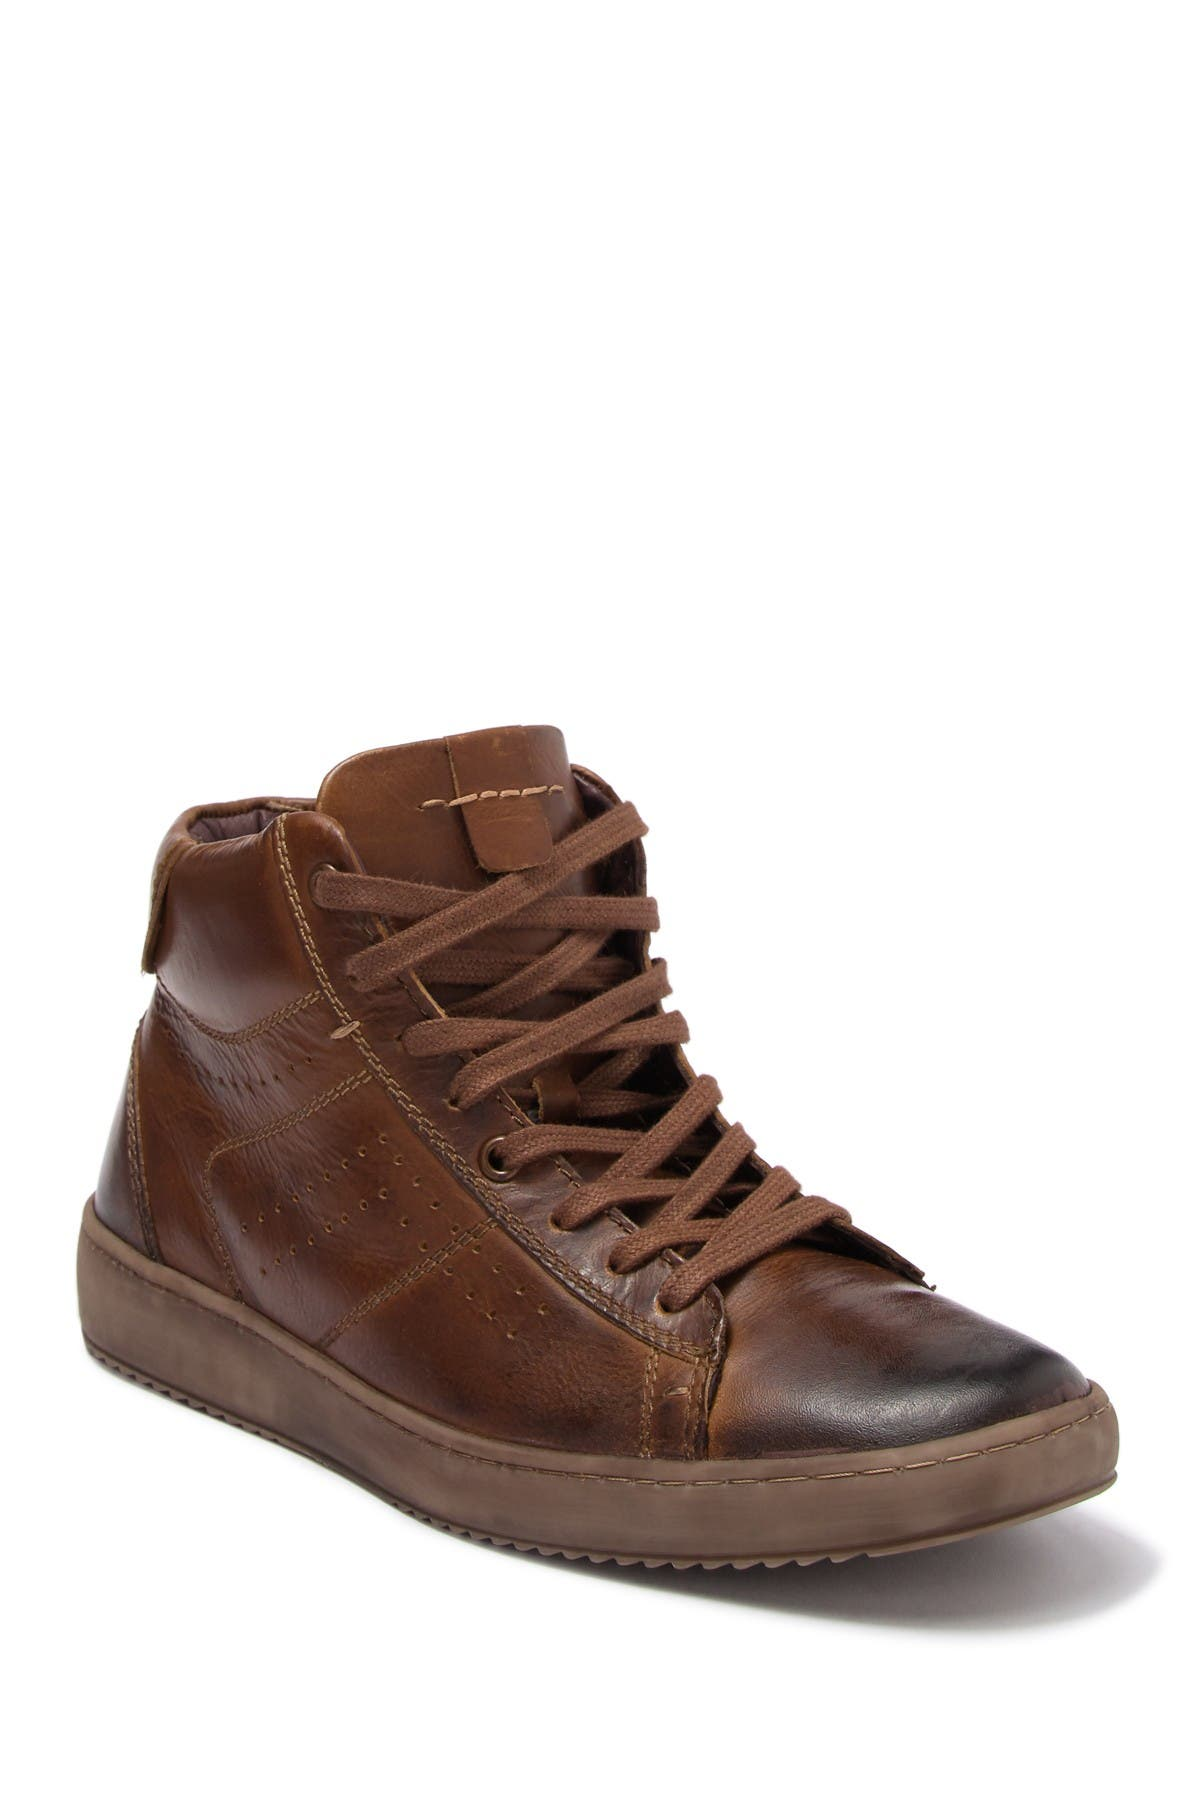 Image of Roan Roost Leather High Top Sneaker